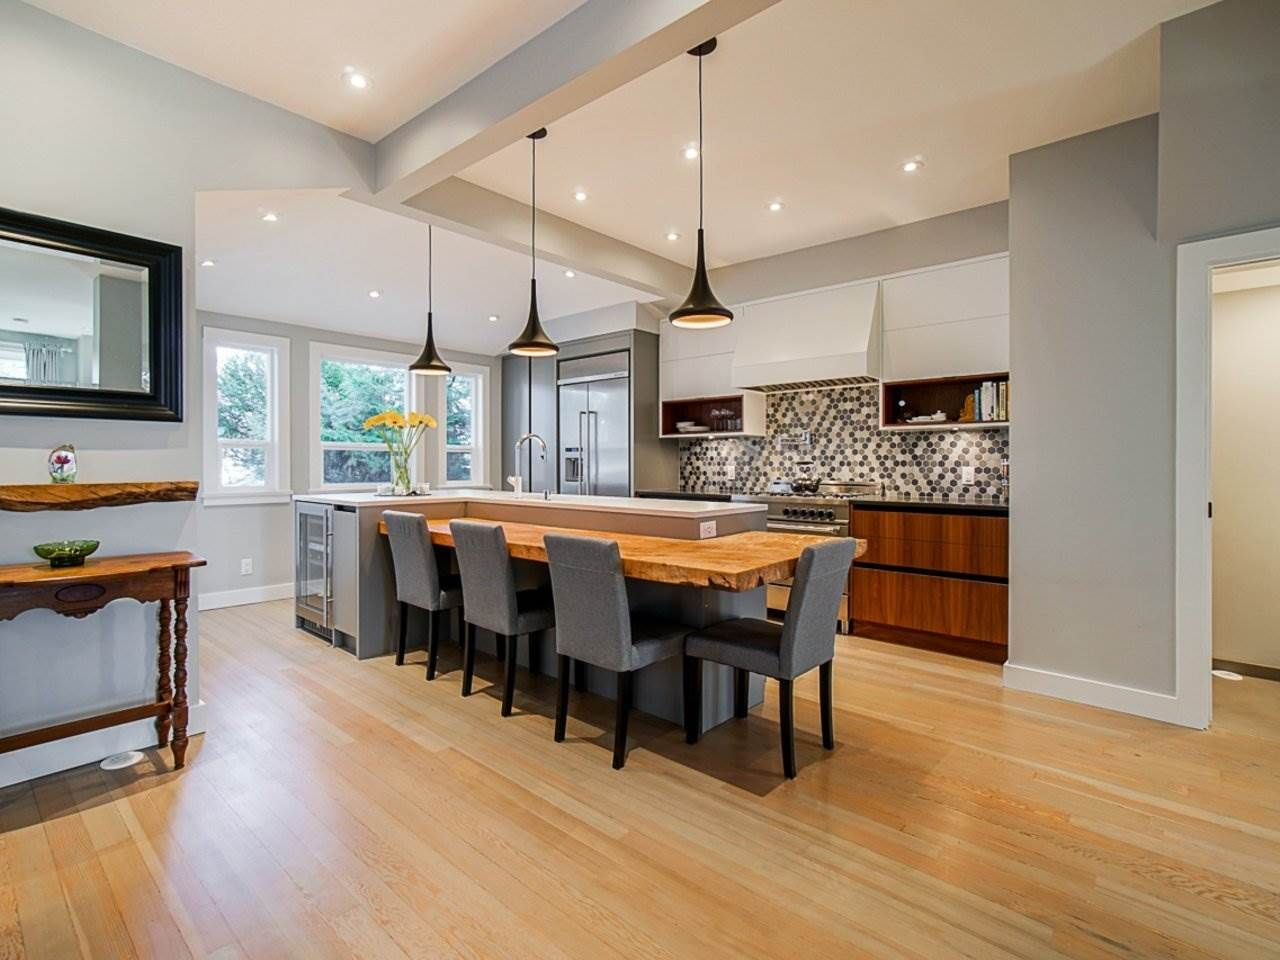 """Main Photo: 557 E 48TH Avenue in Vancouver: Fraser VE House for sale in """"Fraser"""" (Vancouver East)  : MLS®# R2577782"""